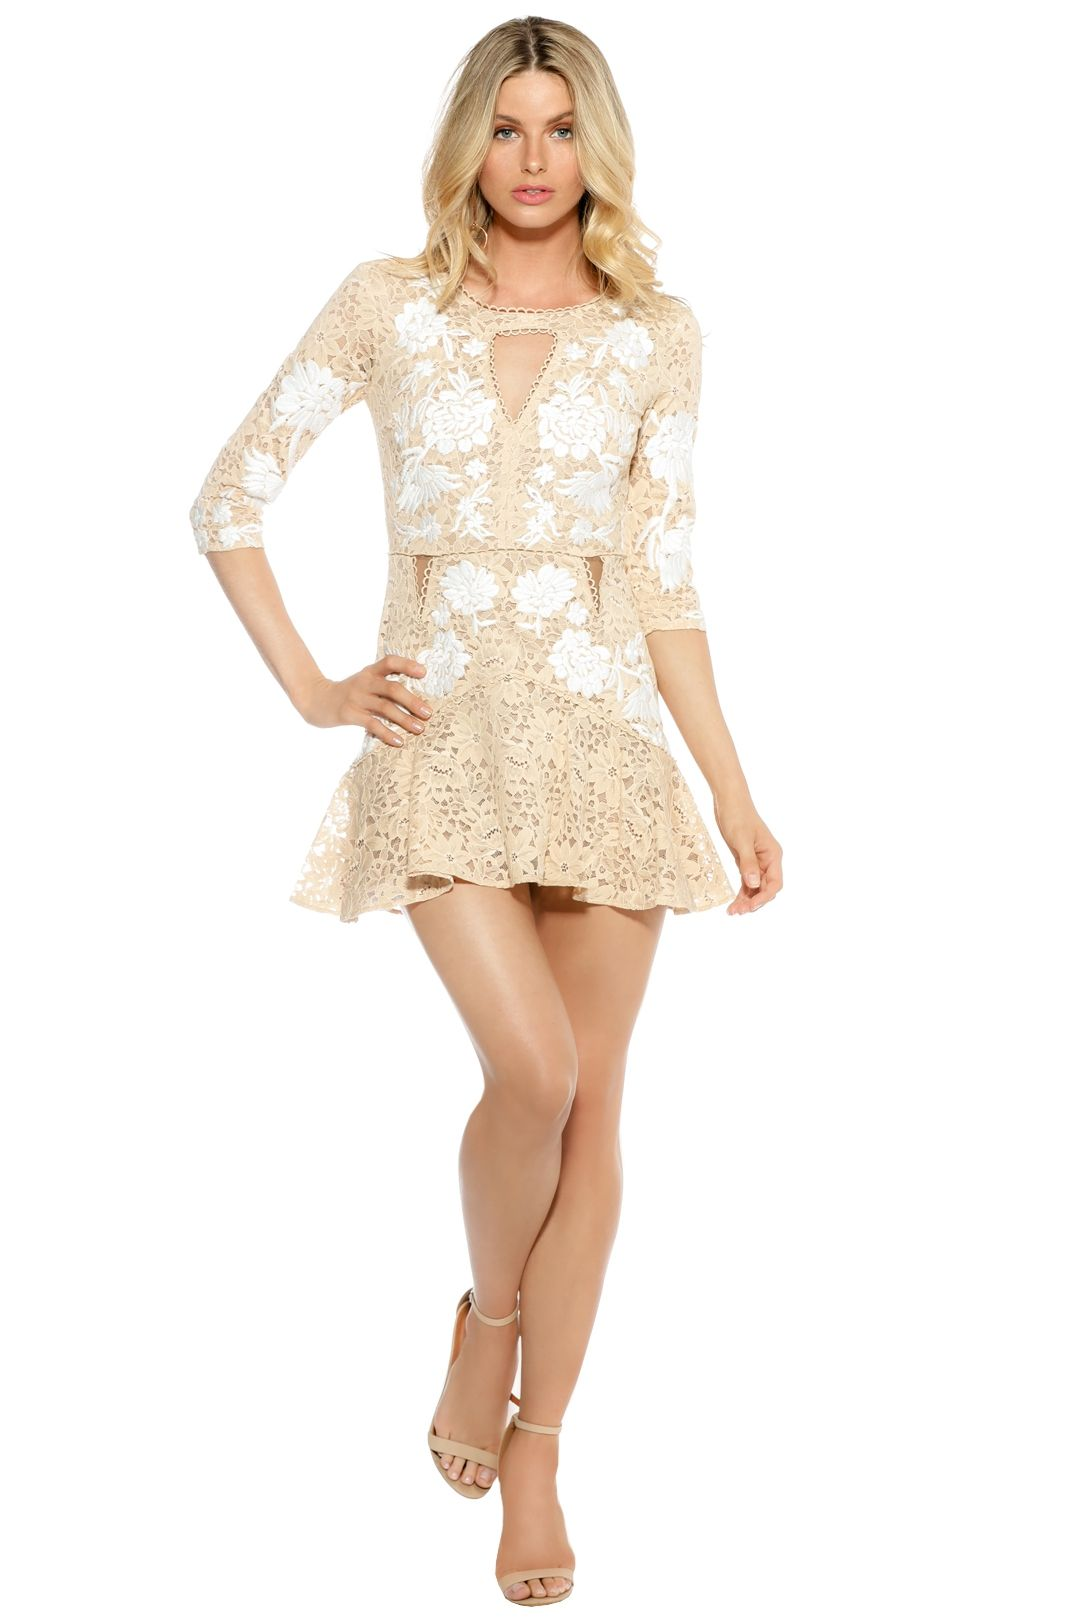 For Love and Lemons - Mallorca Embroidery Dress - Latte - Front